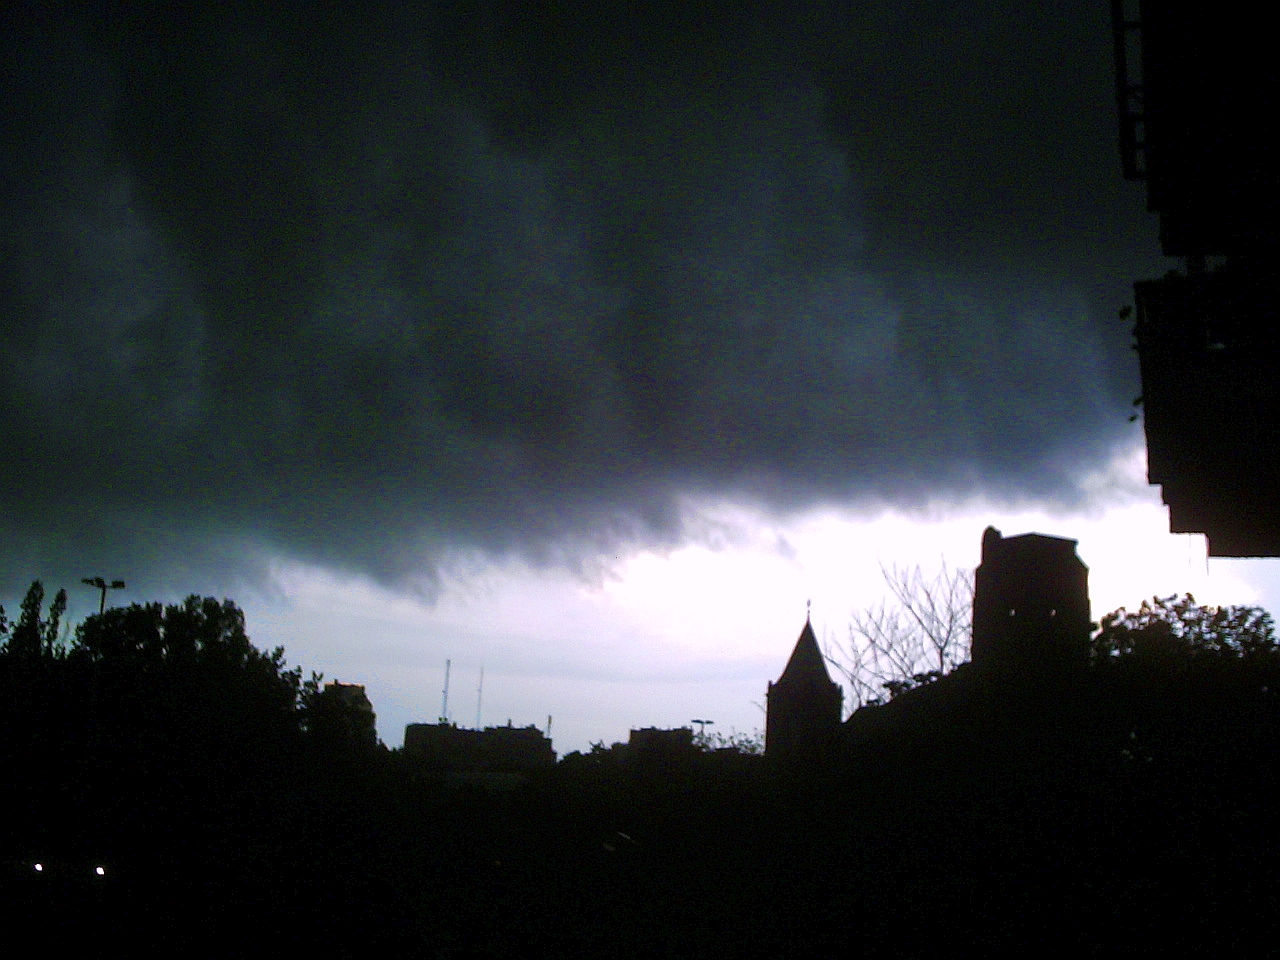 Just before a thunderstorm in Warsaw